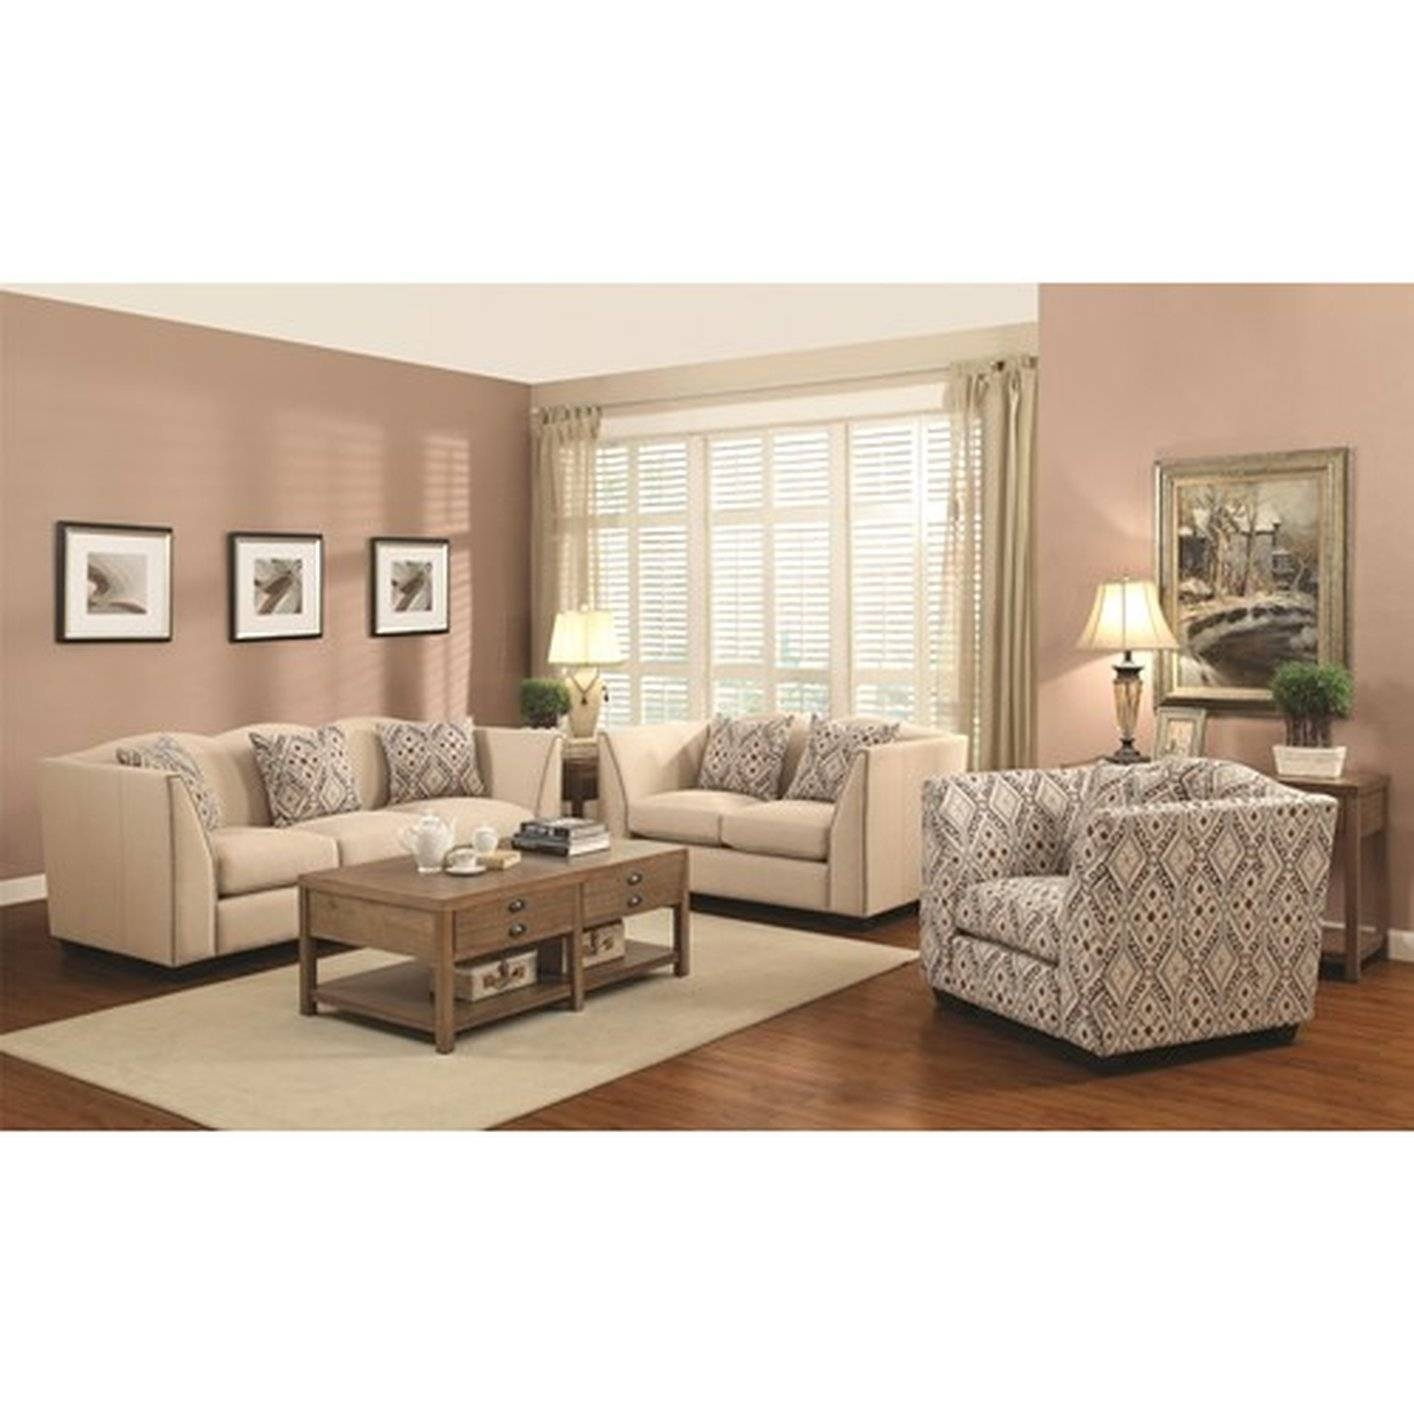 Coaster Siana 902167 Beige Fabric Accent Chair - Steal-A-Sofa pertaining to Sofa and Accent Chair Set (Image 10 of 30)